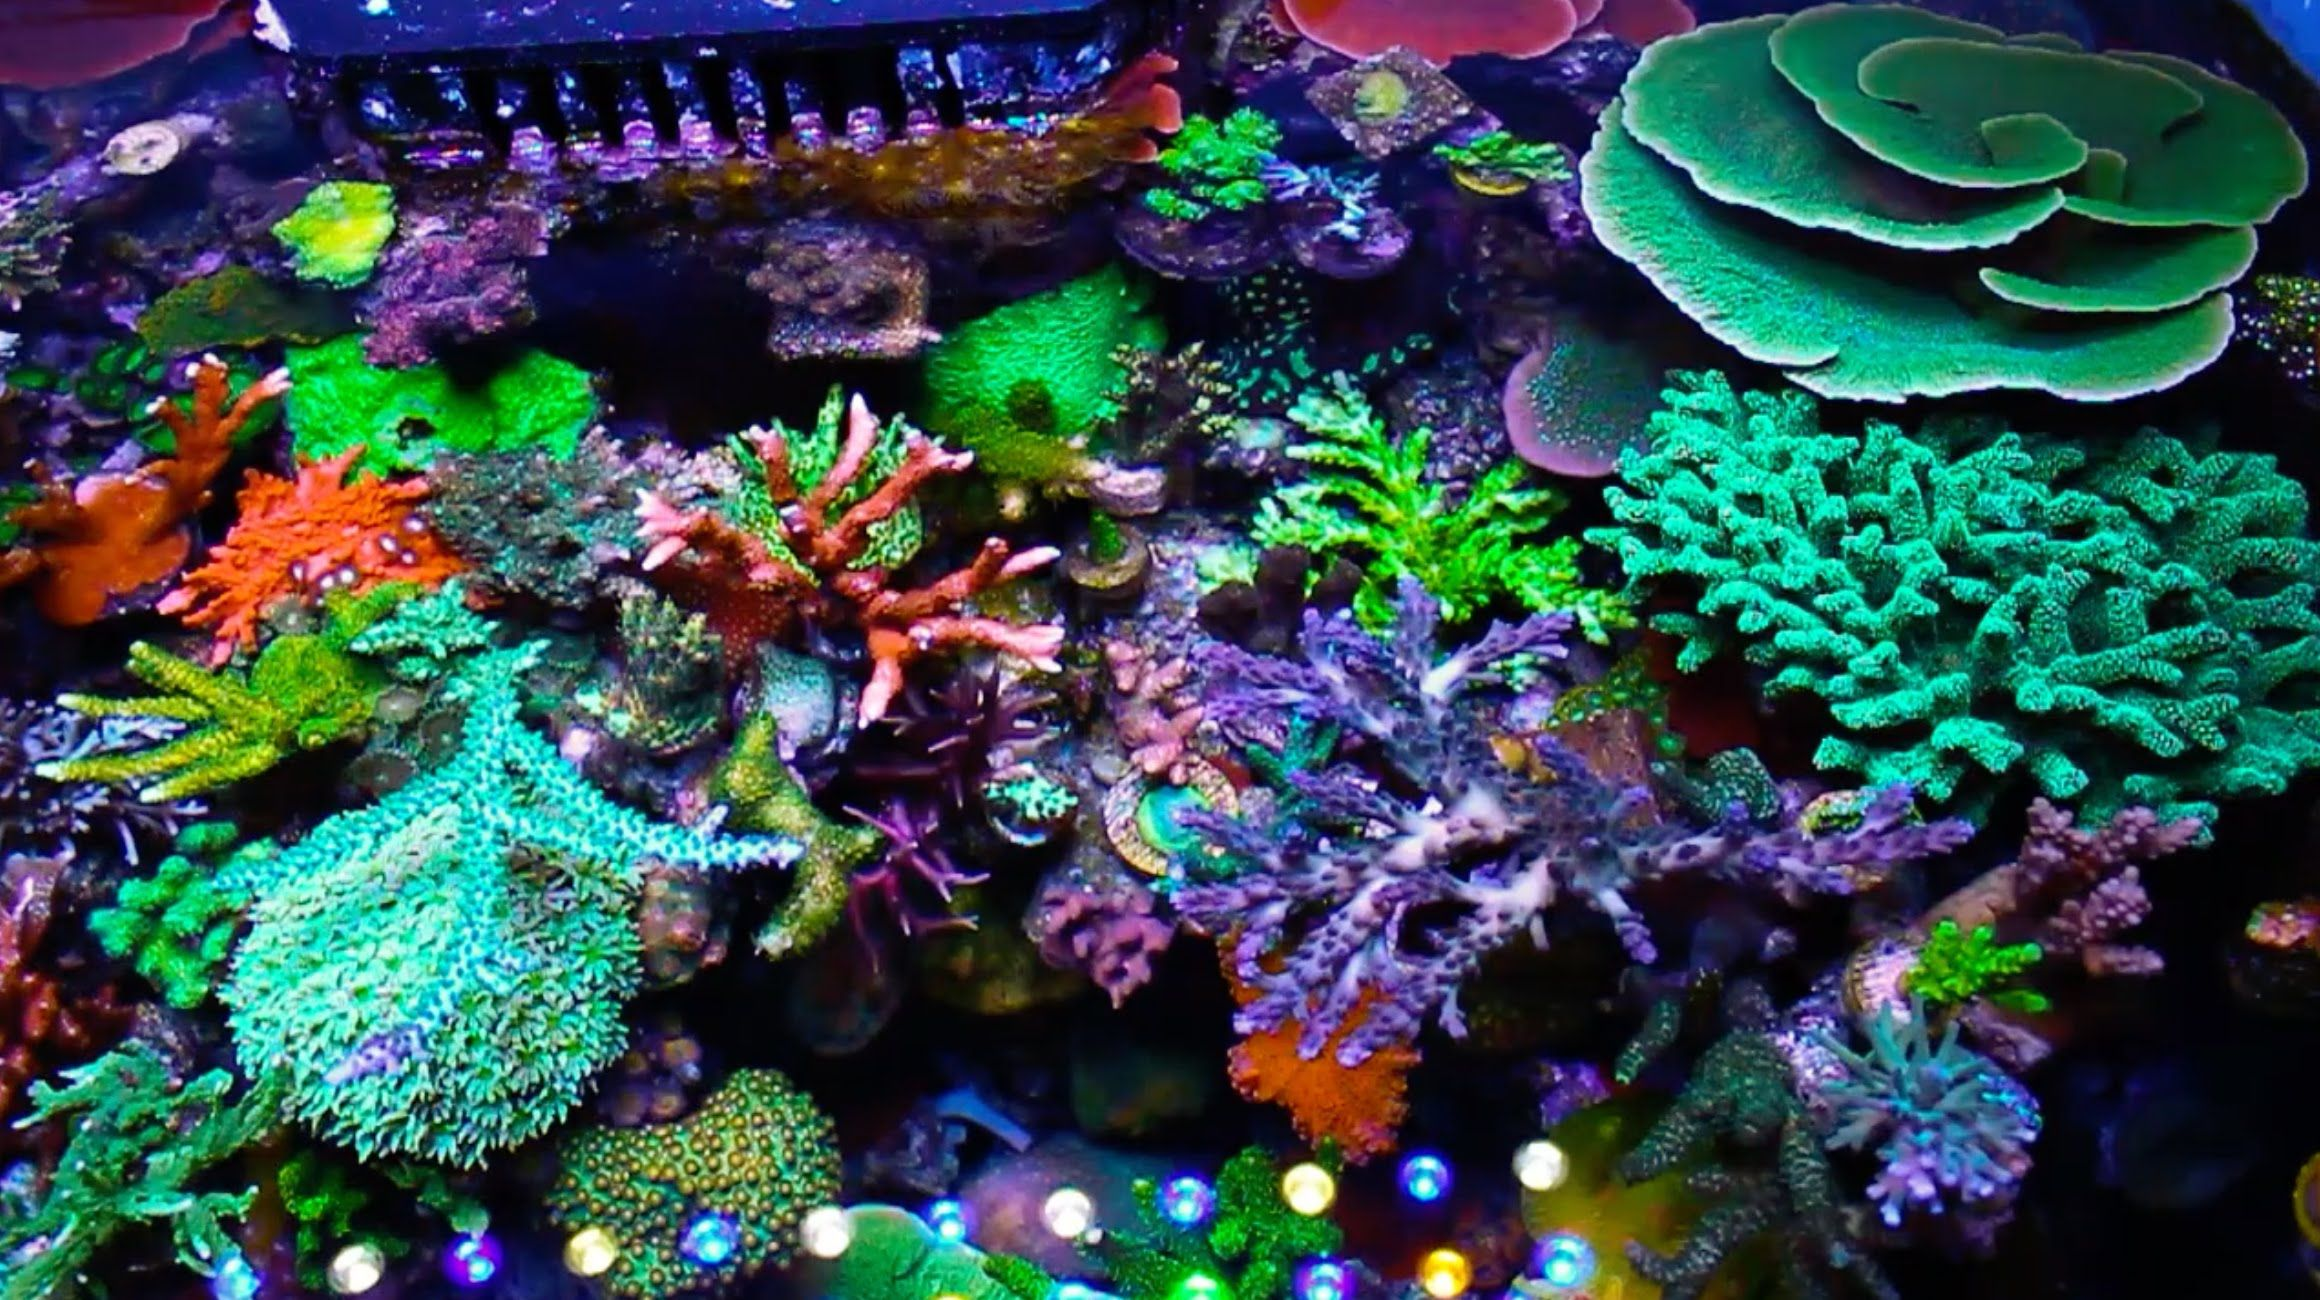 Hernan chaves 75 gallon reef tank reef lounge usa elos for Reef tank fish